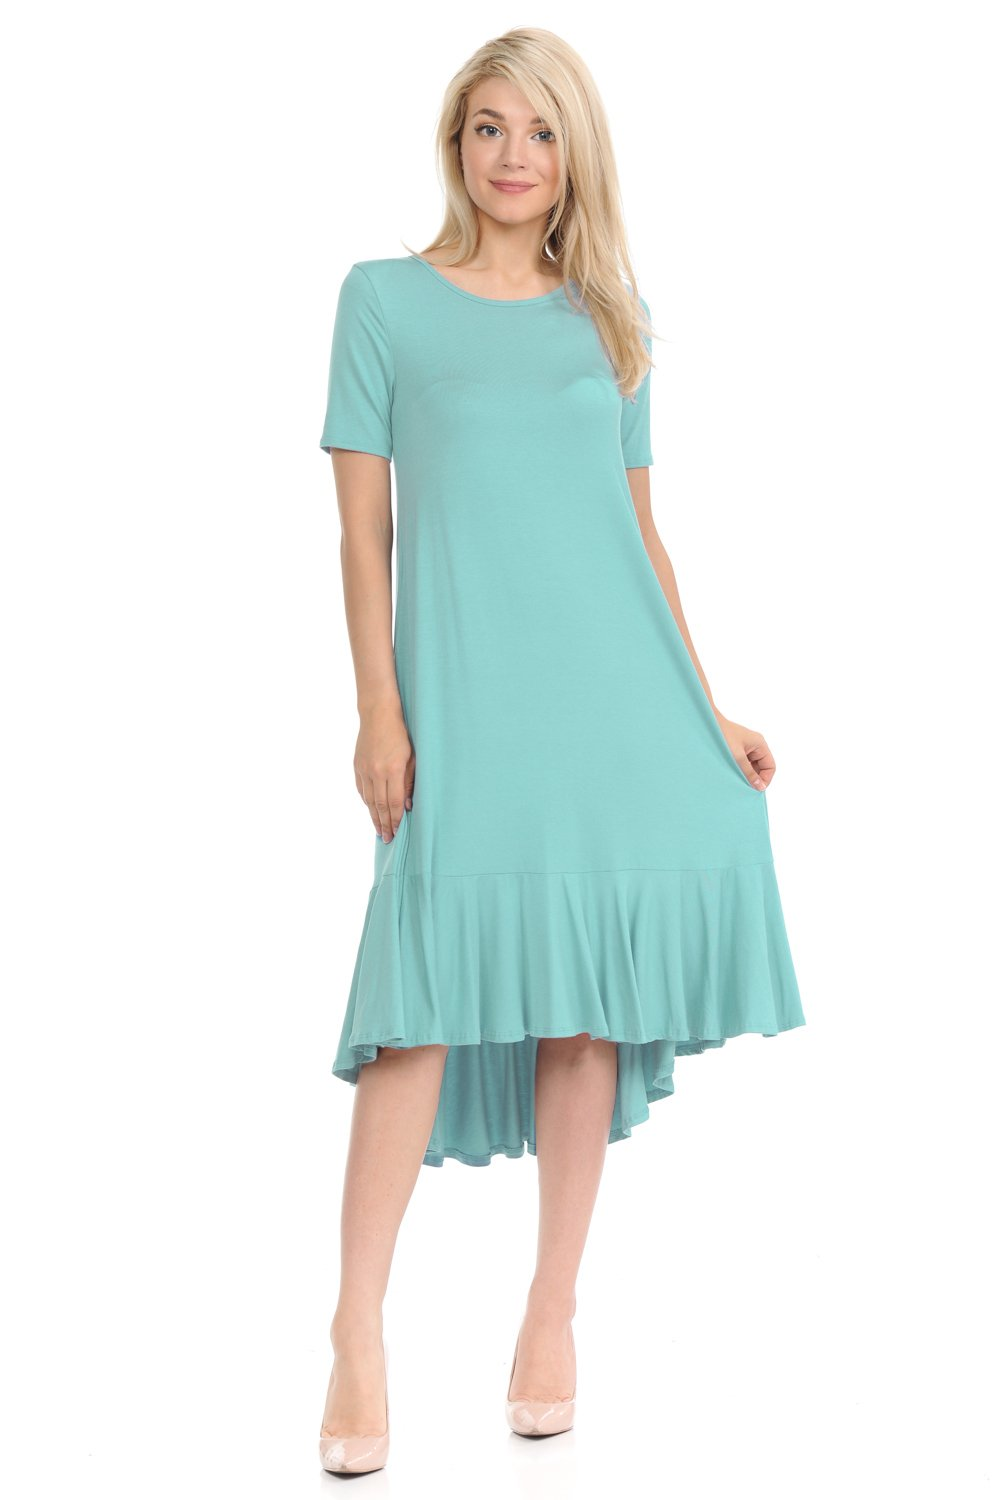 Pastel by Vivienne Women's Short Sleeve High-Low Mid Dress with Ruffle Detail